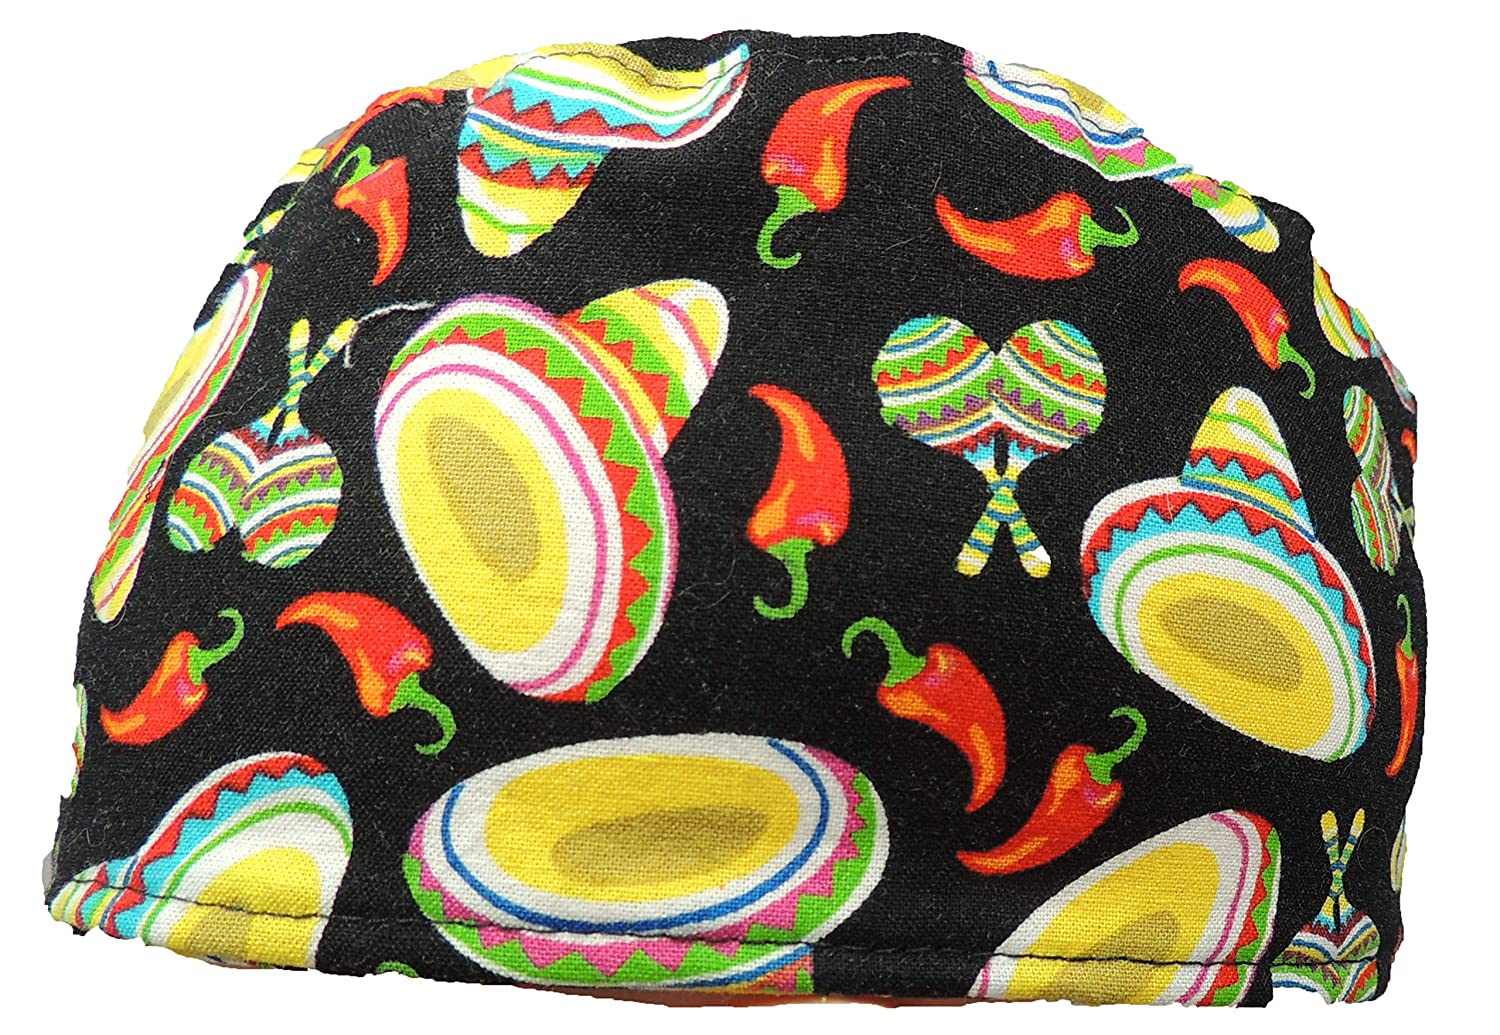 Sombreros /& Red Chlis Medical Surgical Scrub Hat 100/% Cotton with Tie Back Closure